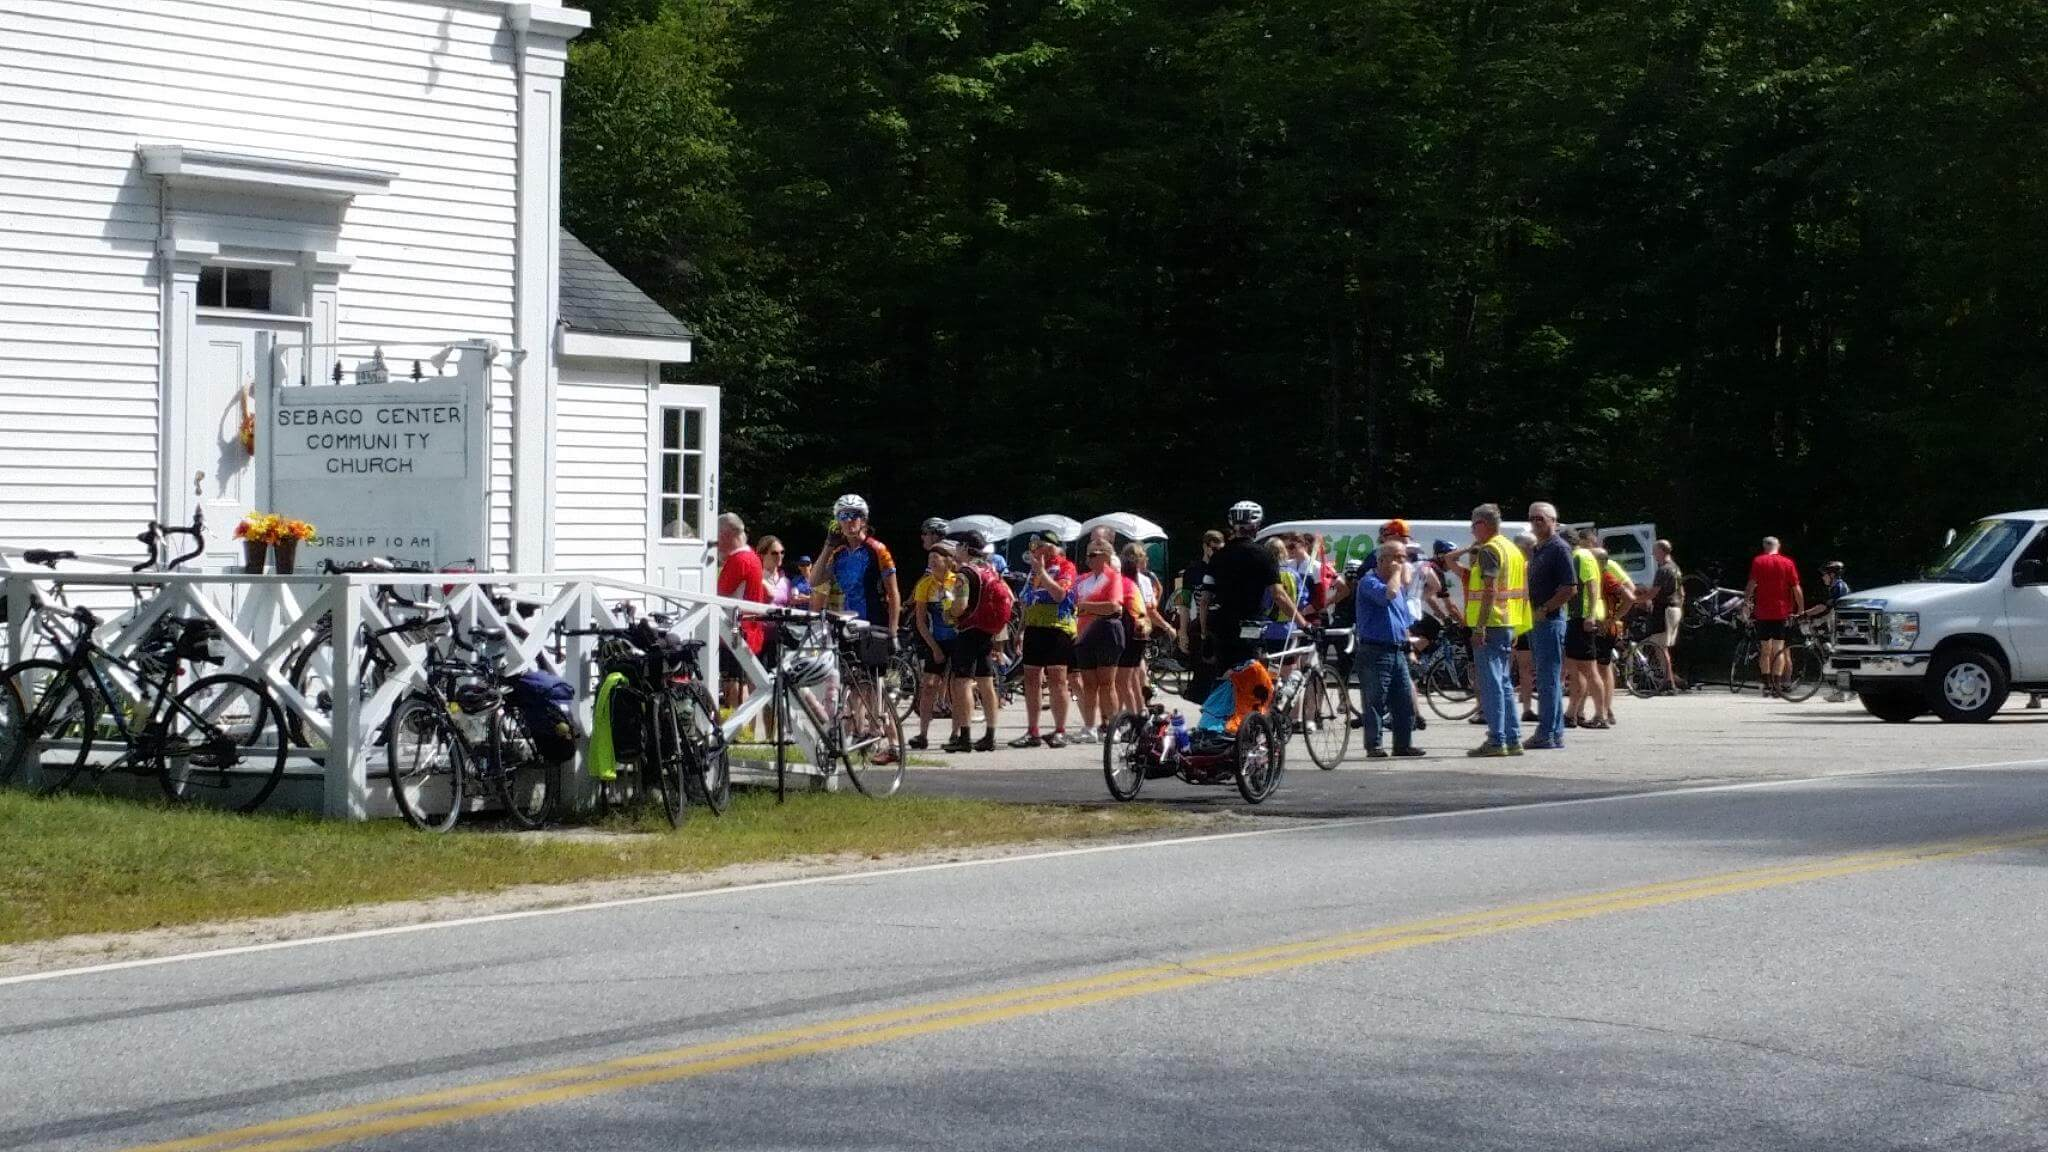 Lunch stop at the Sebago Center Community Church